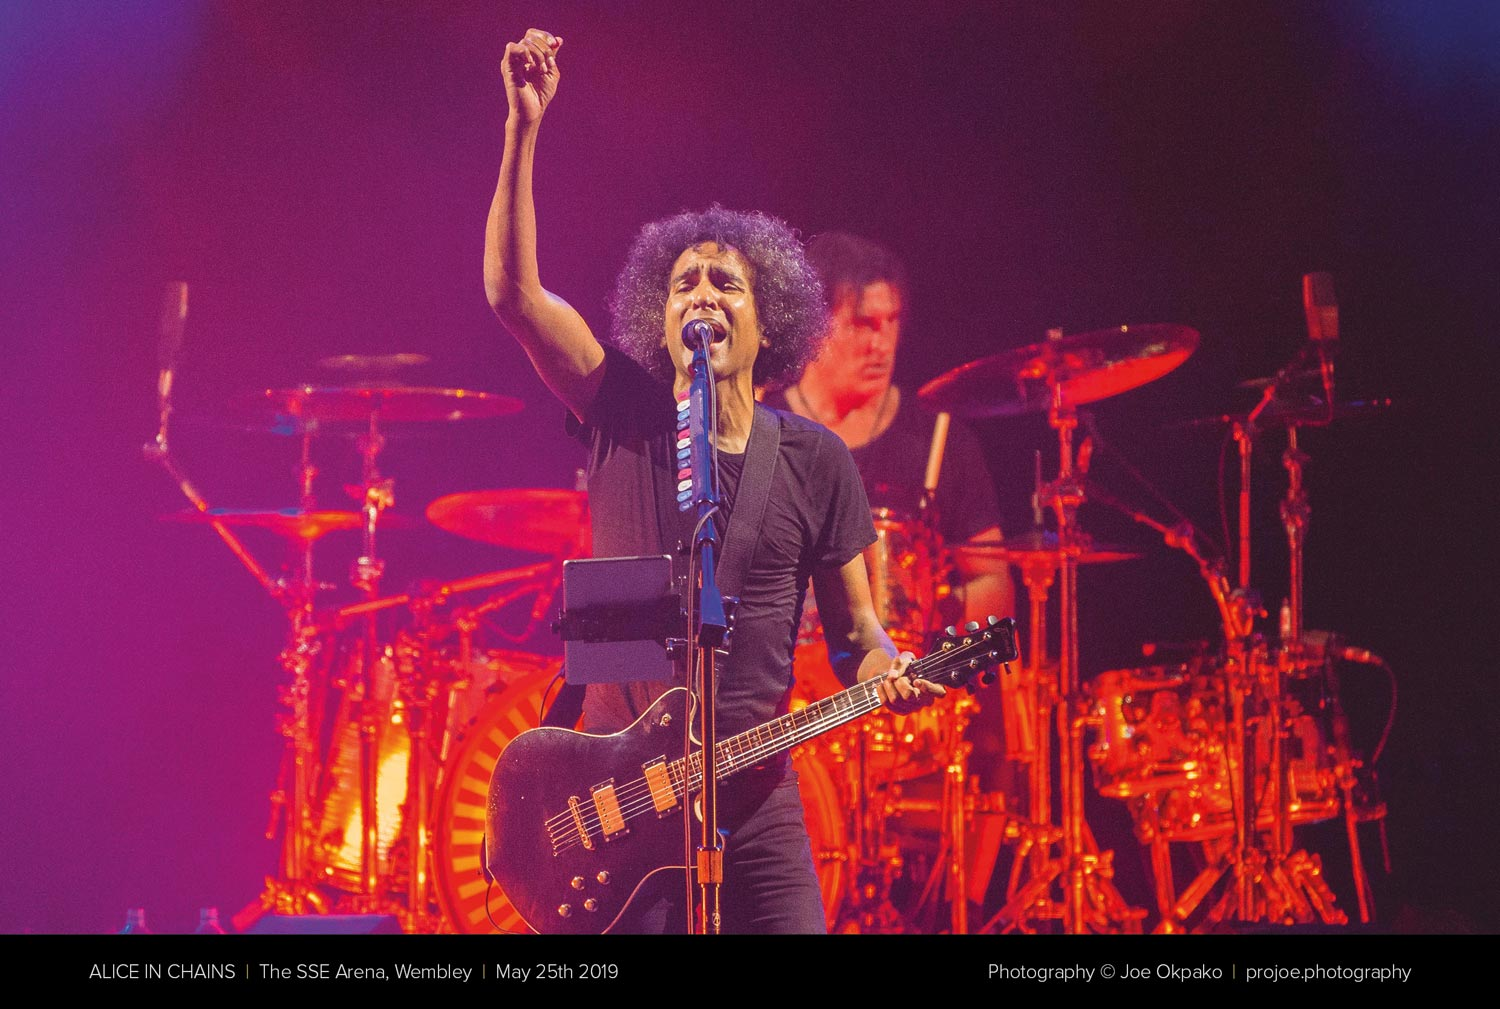 Alice in chains 2019